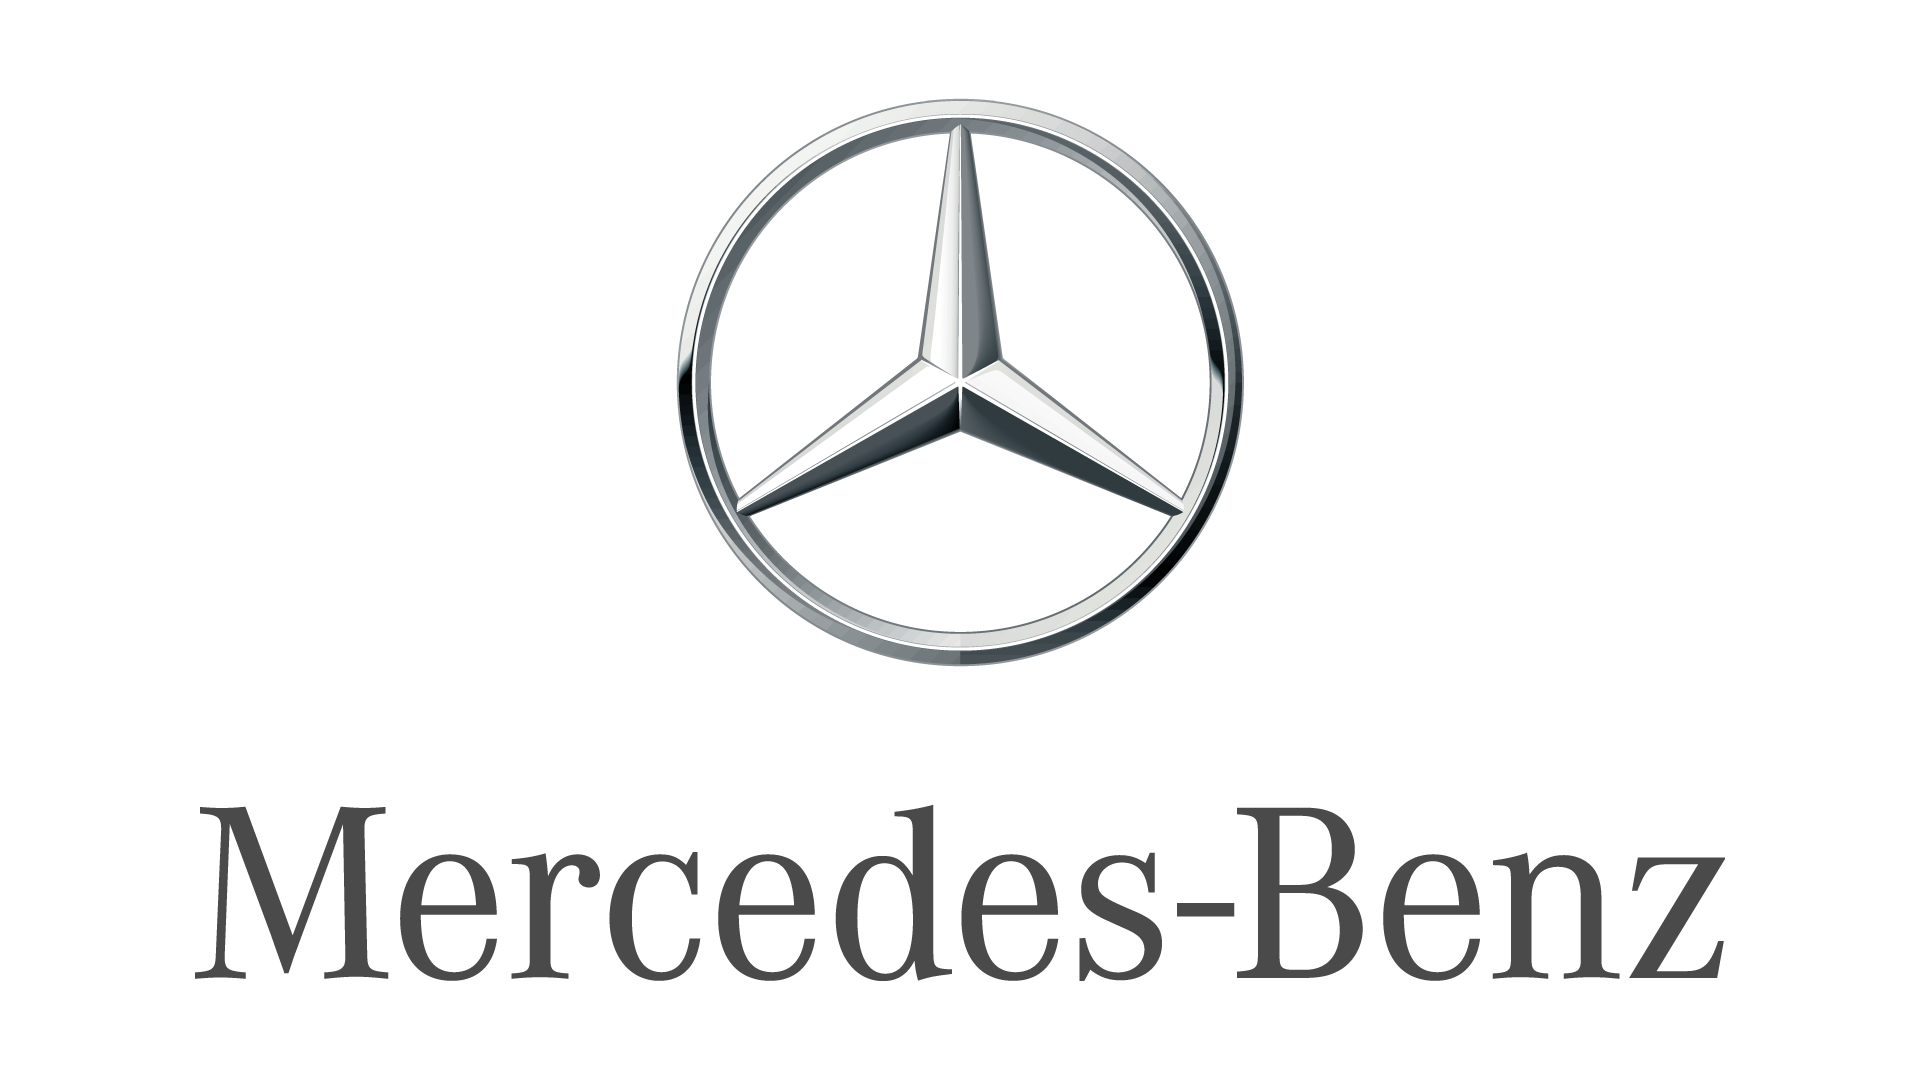 #03, Mercedes-Benz logo